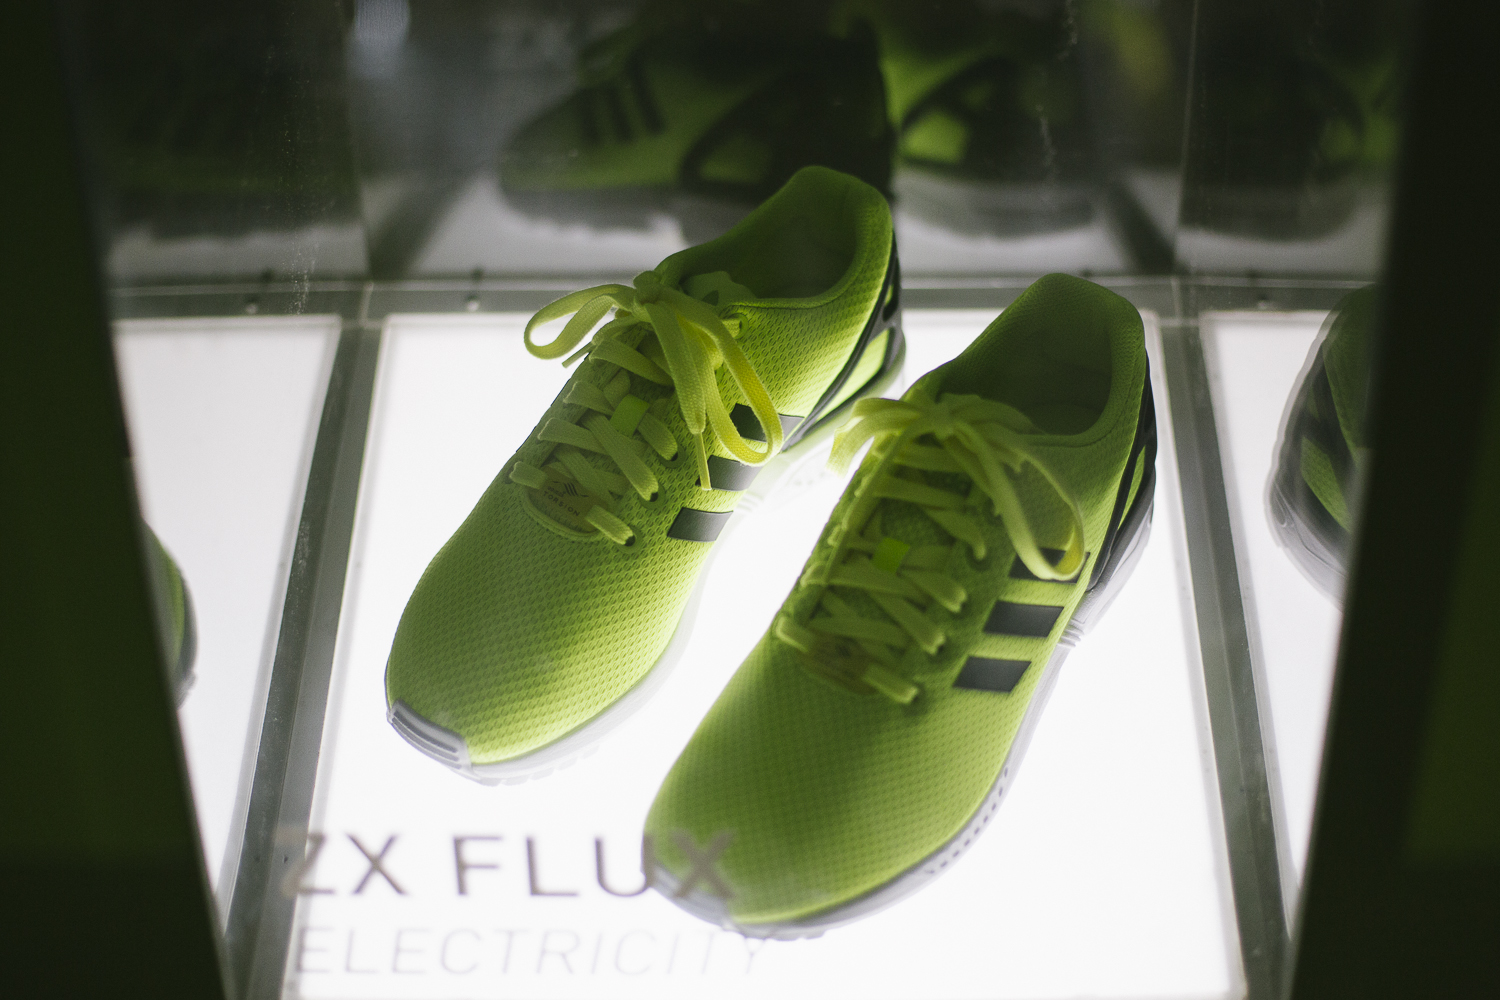 022_Adidas-ZX FLUX-Electricity_ANDPEOPLE_KimTerriSmith.jpg